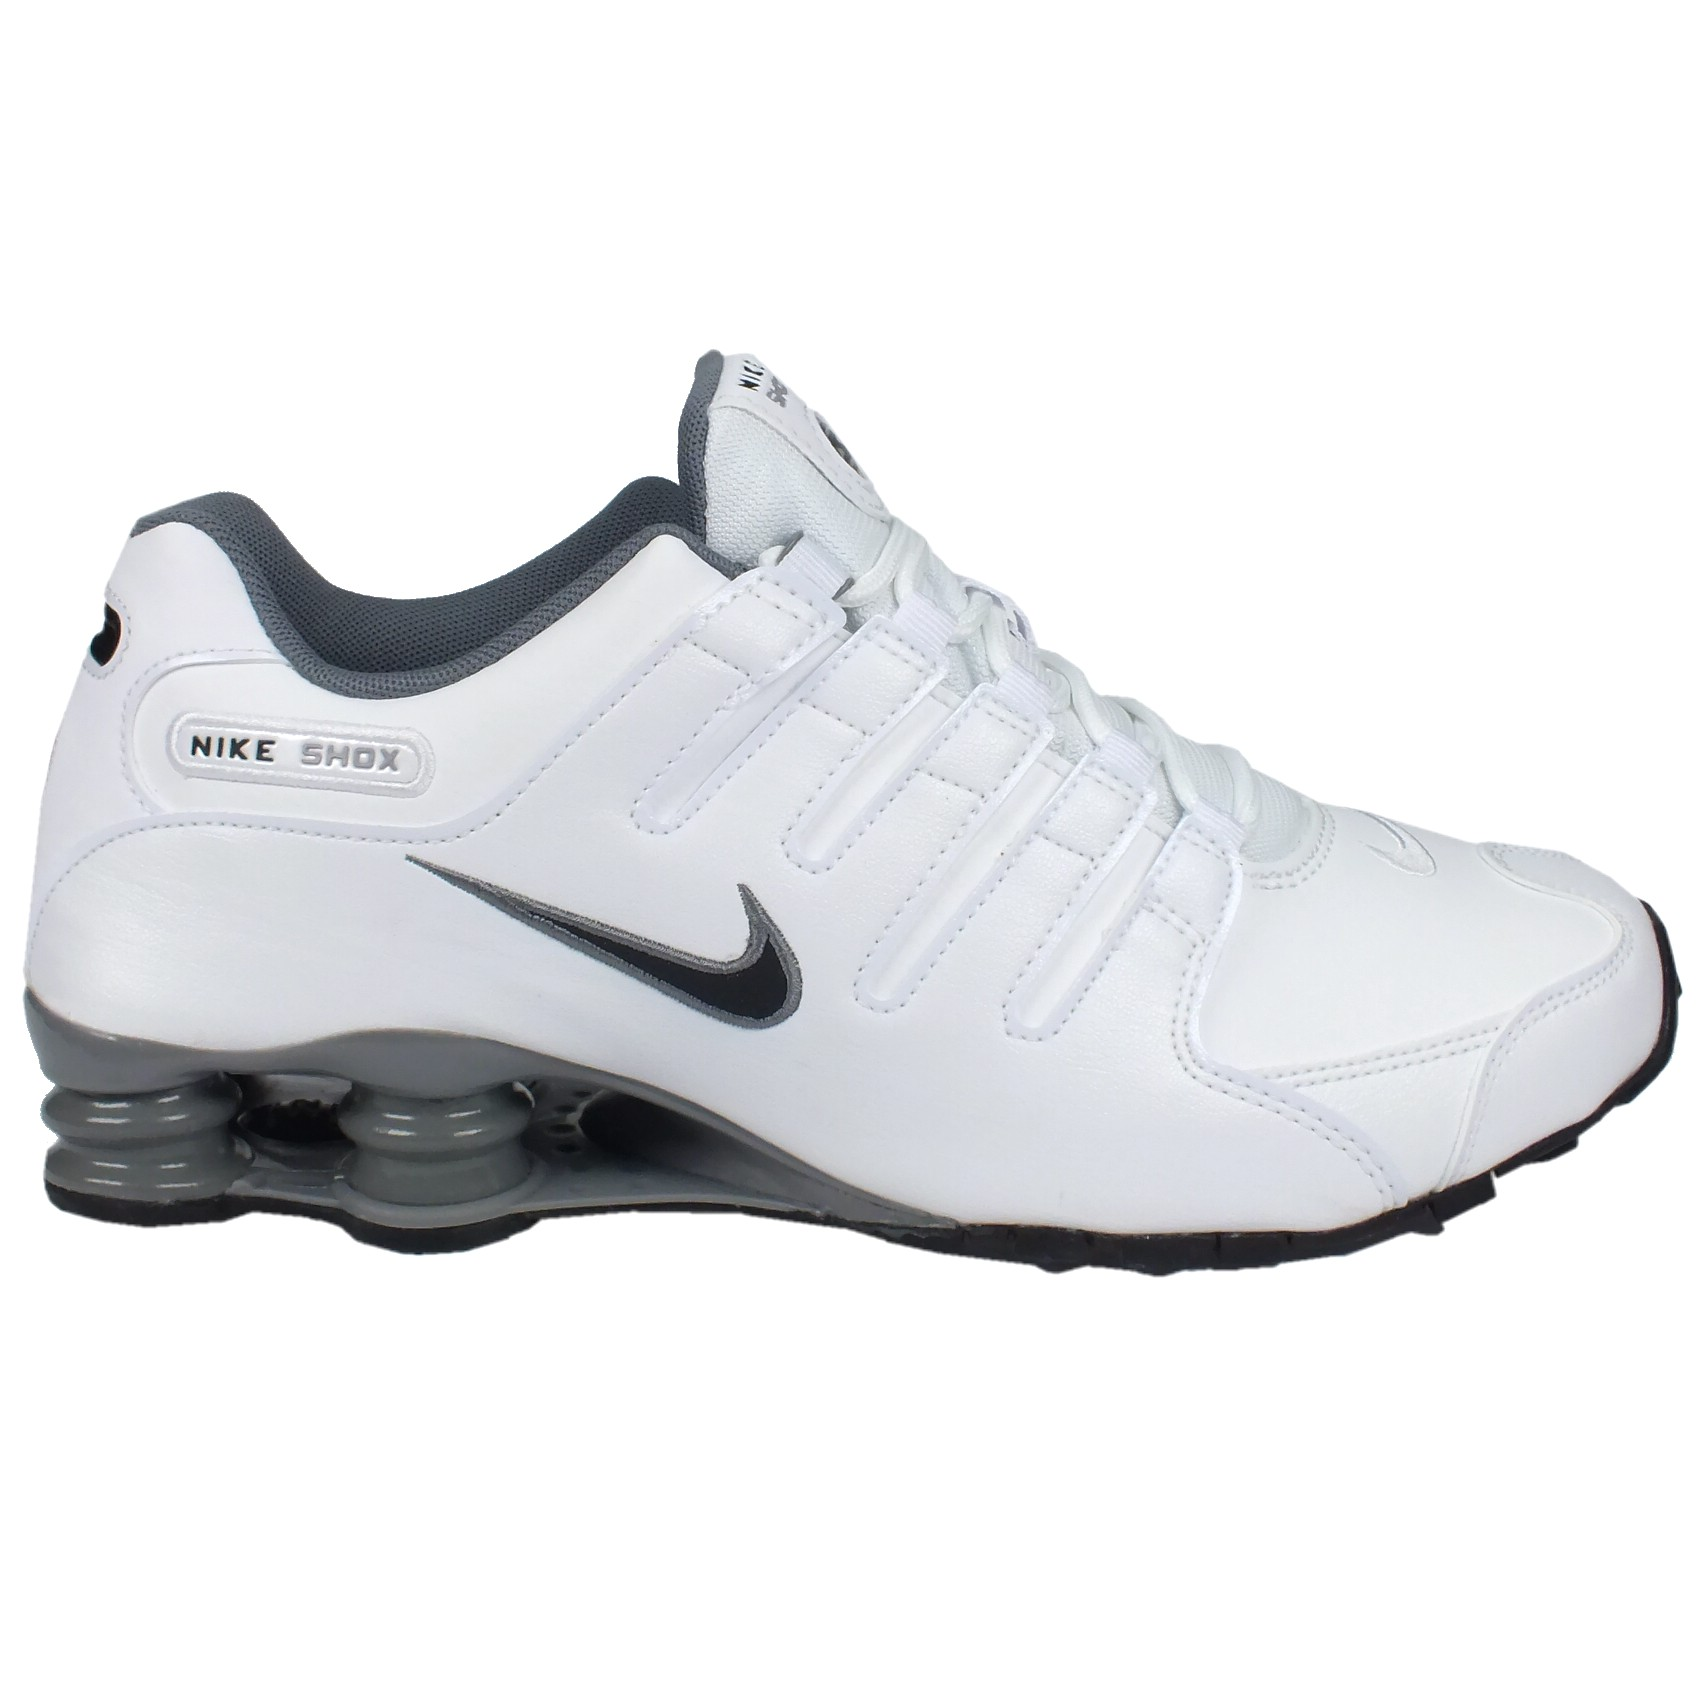 nike shox nz eu herren schuhe sneakers turnschuhe freizeitschuhe wei grau ebay. Black Bedroom Furniture Sets. Home Design Ideas